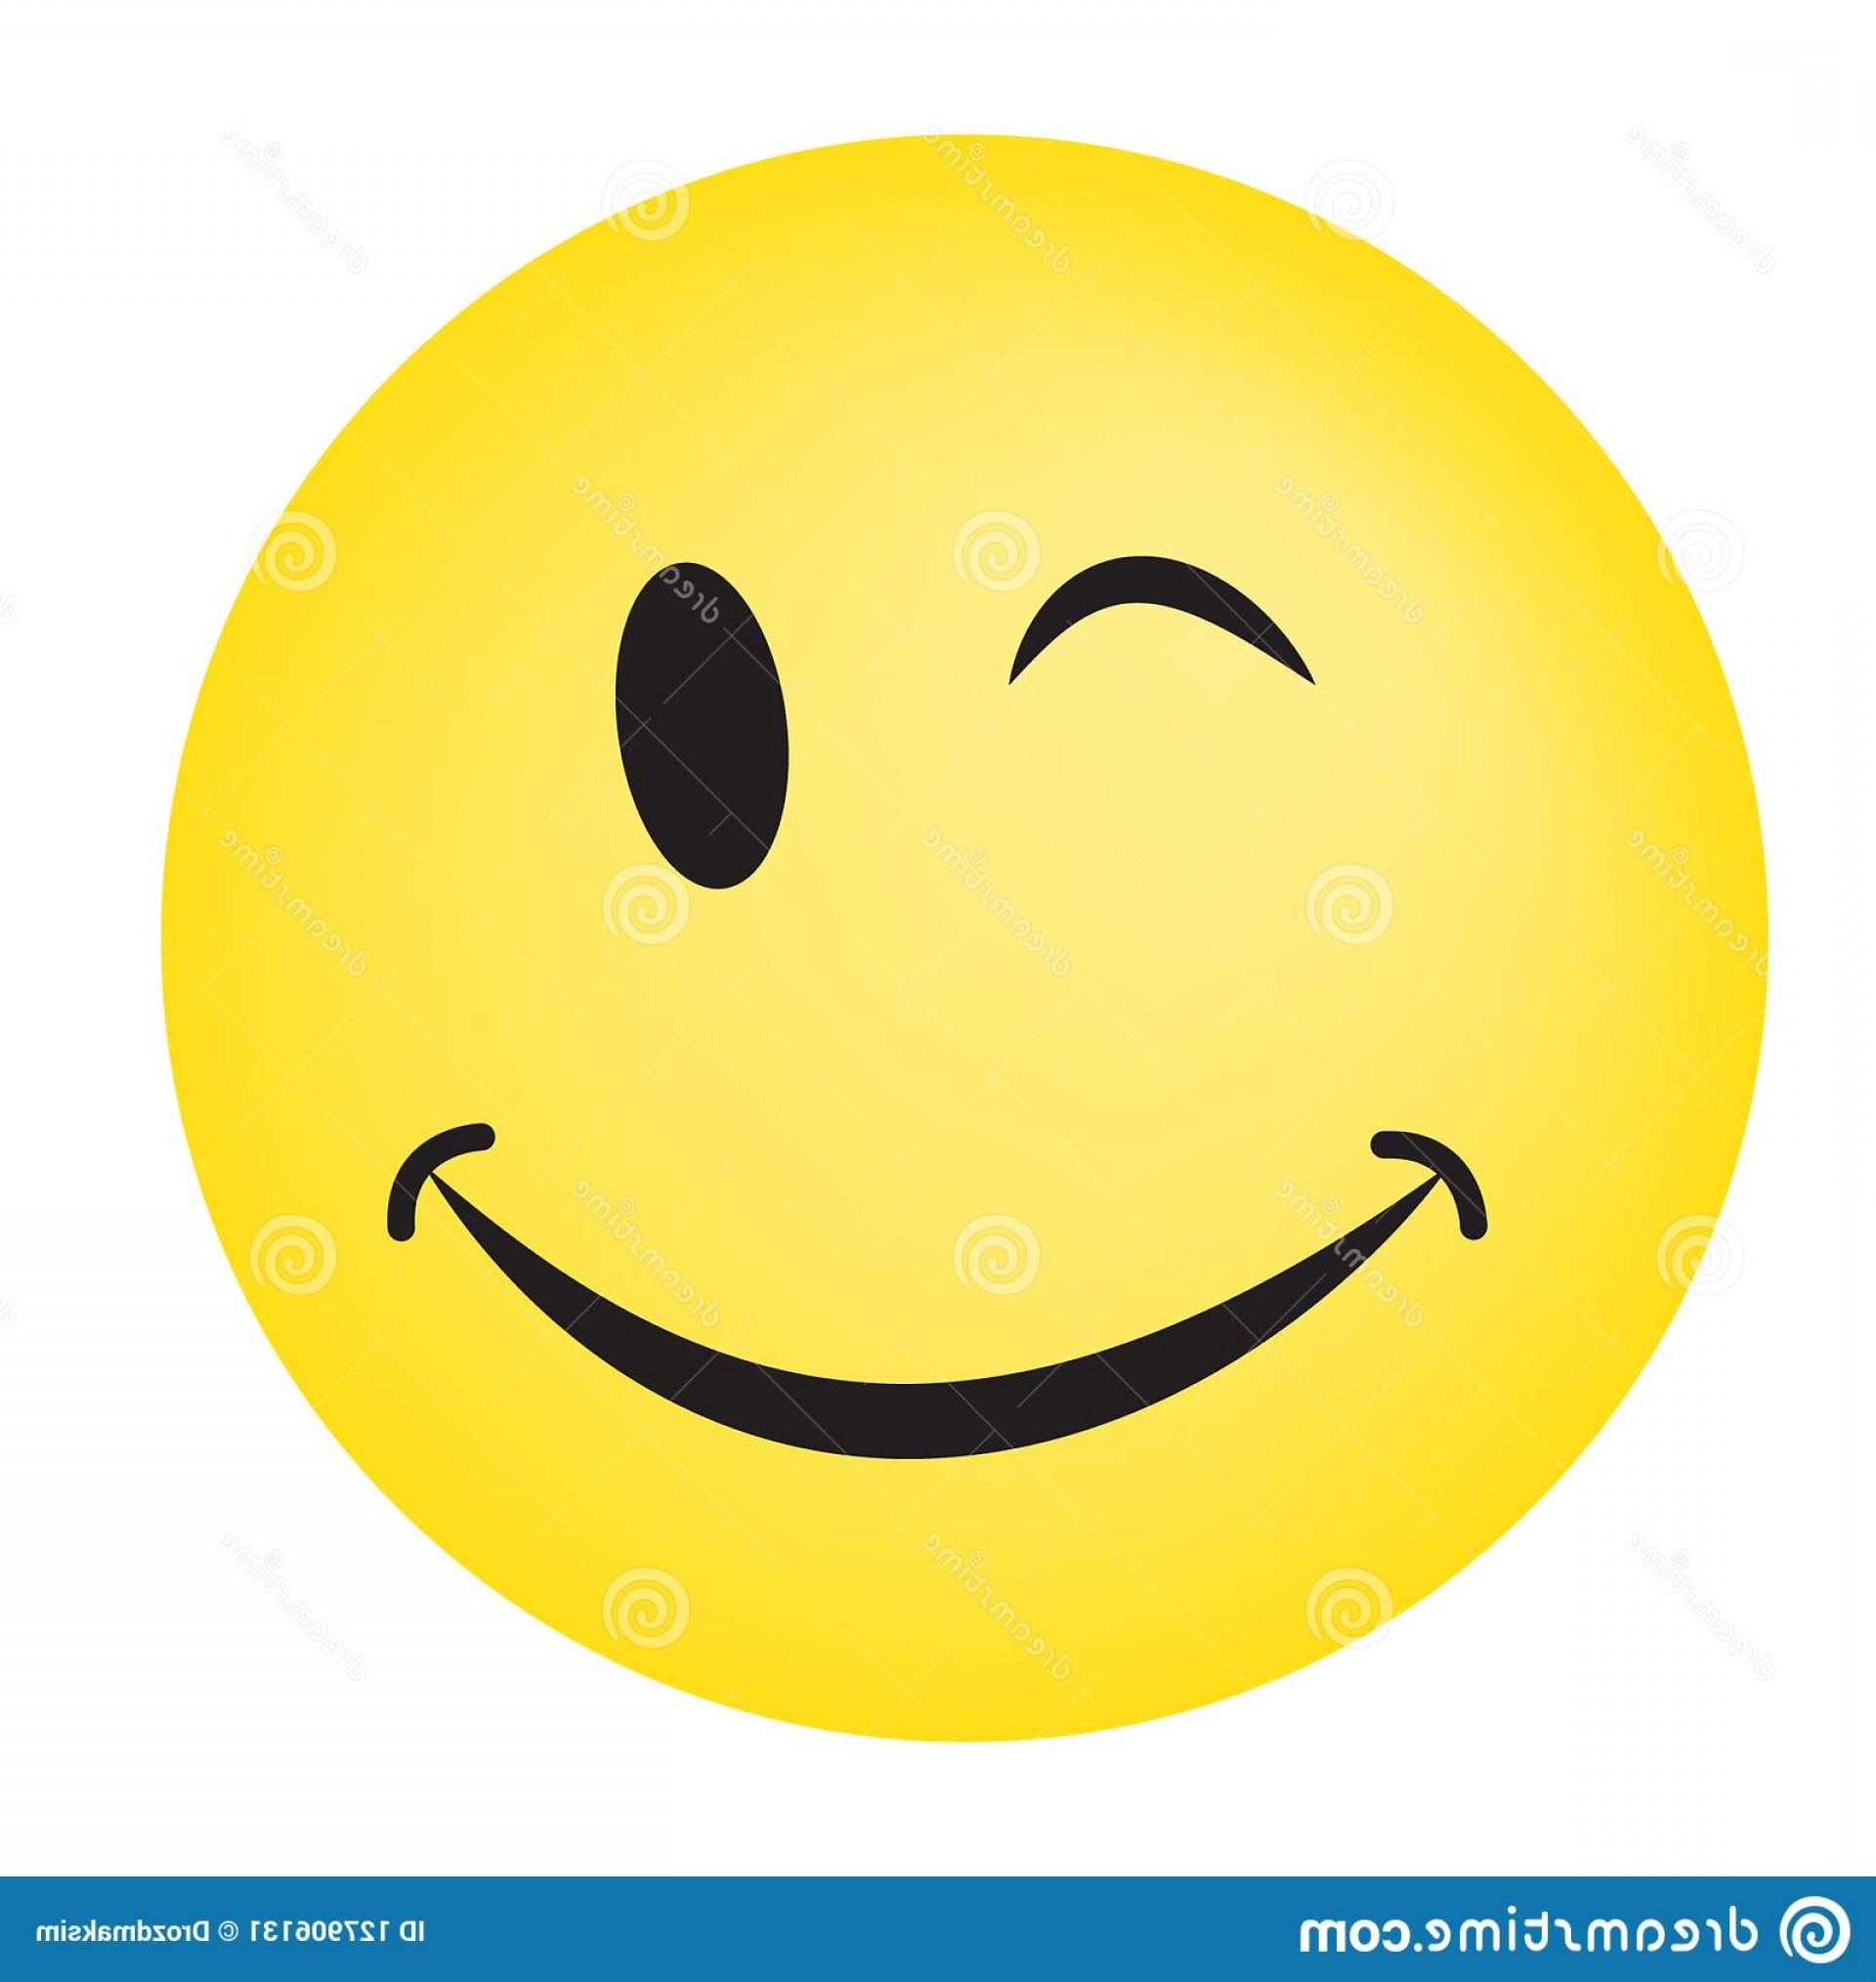 Excited Face Emoji Vector: Smiley Vector Happy Face Illustration Image